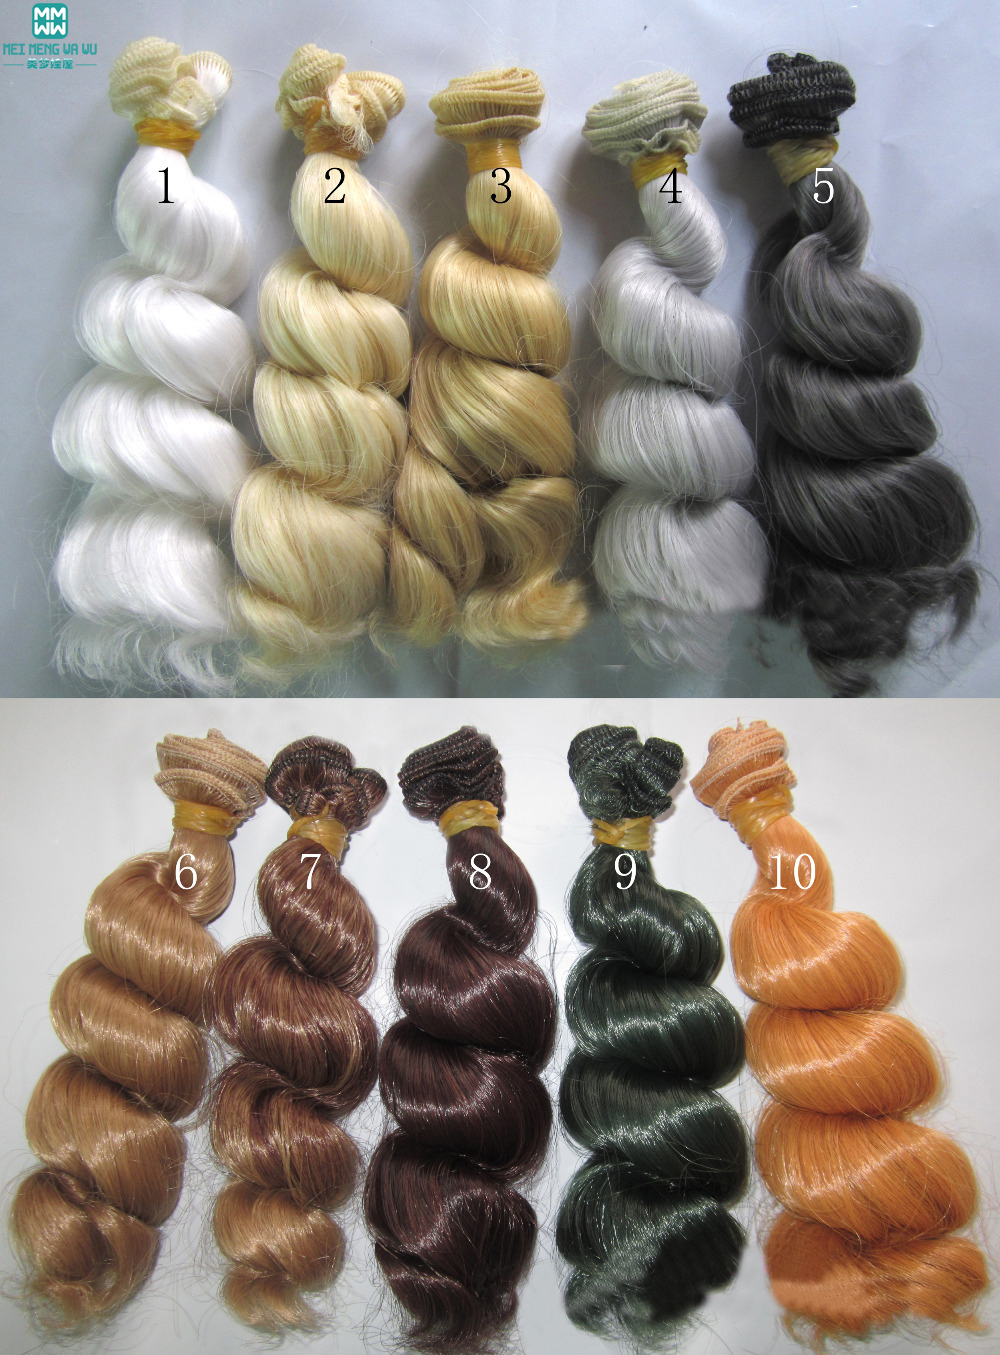 2016 New 15cm*100cm BJD/SD Doll Wigs DIY Fapai New Large waves curls - Dolls and Stuffed Toys